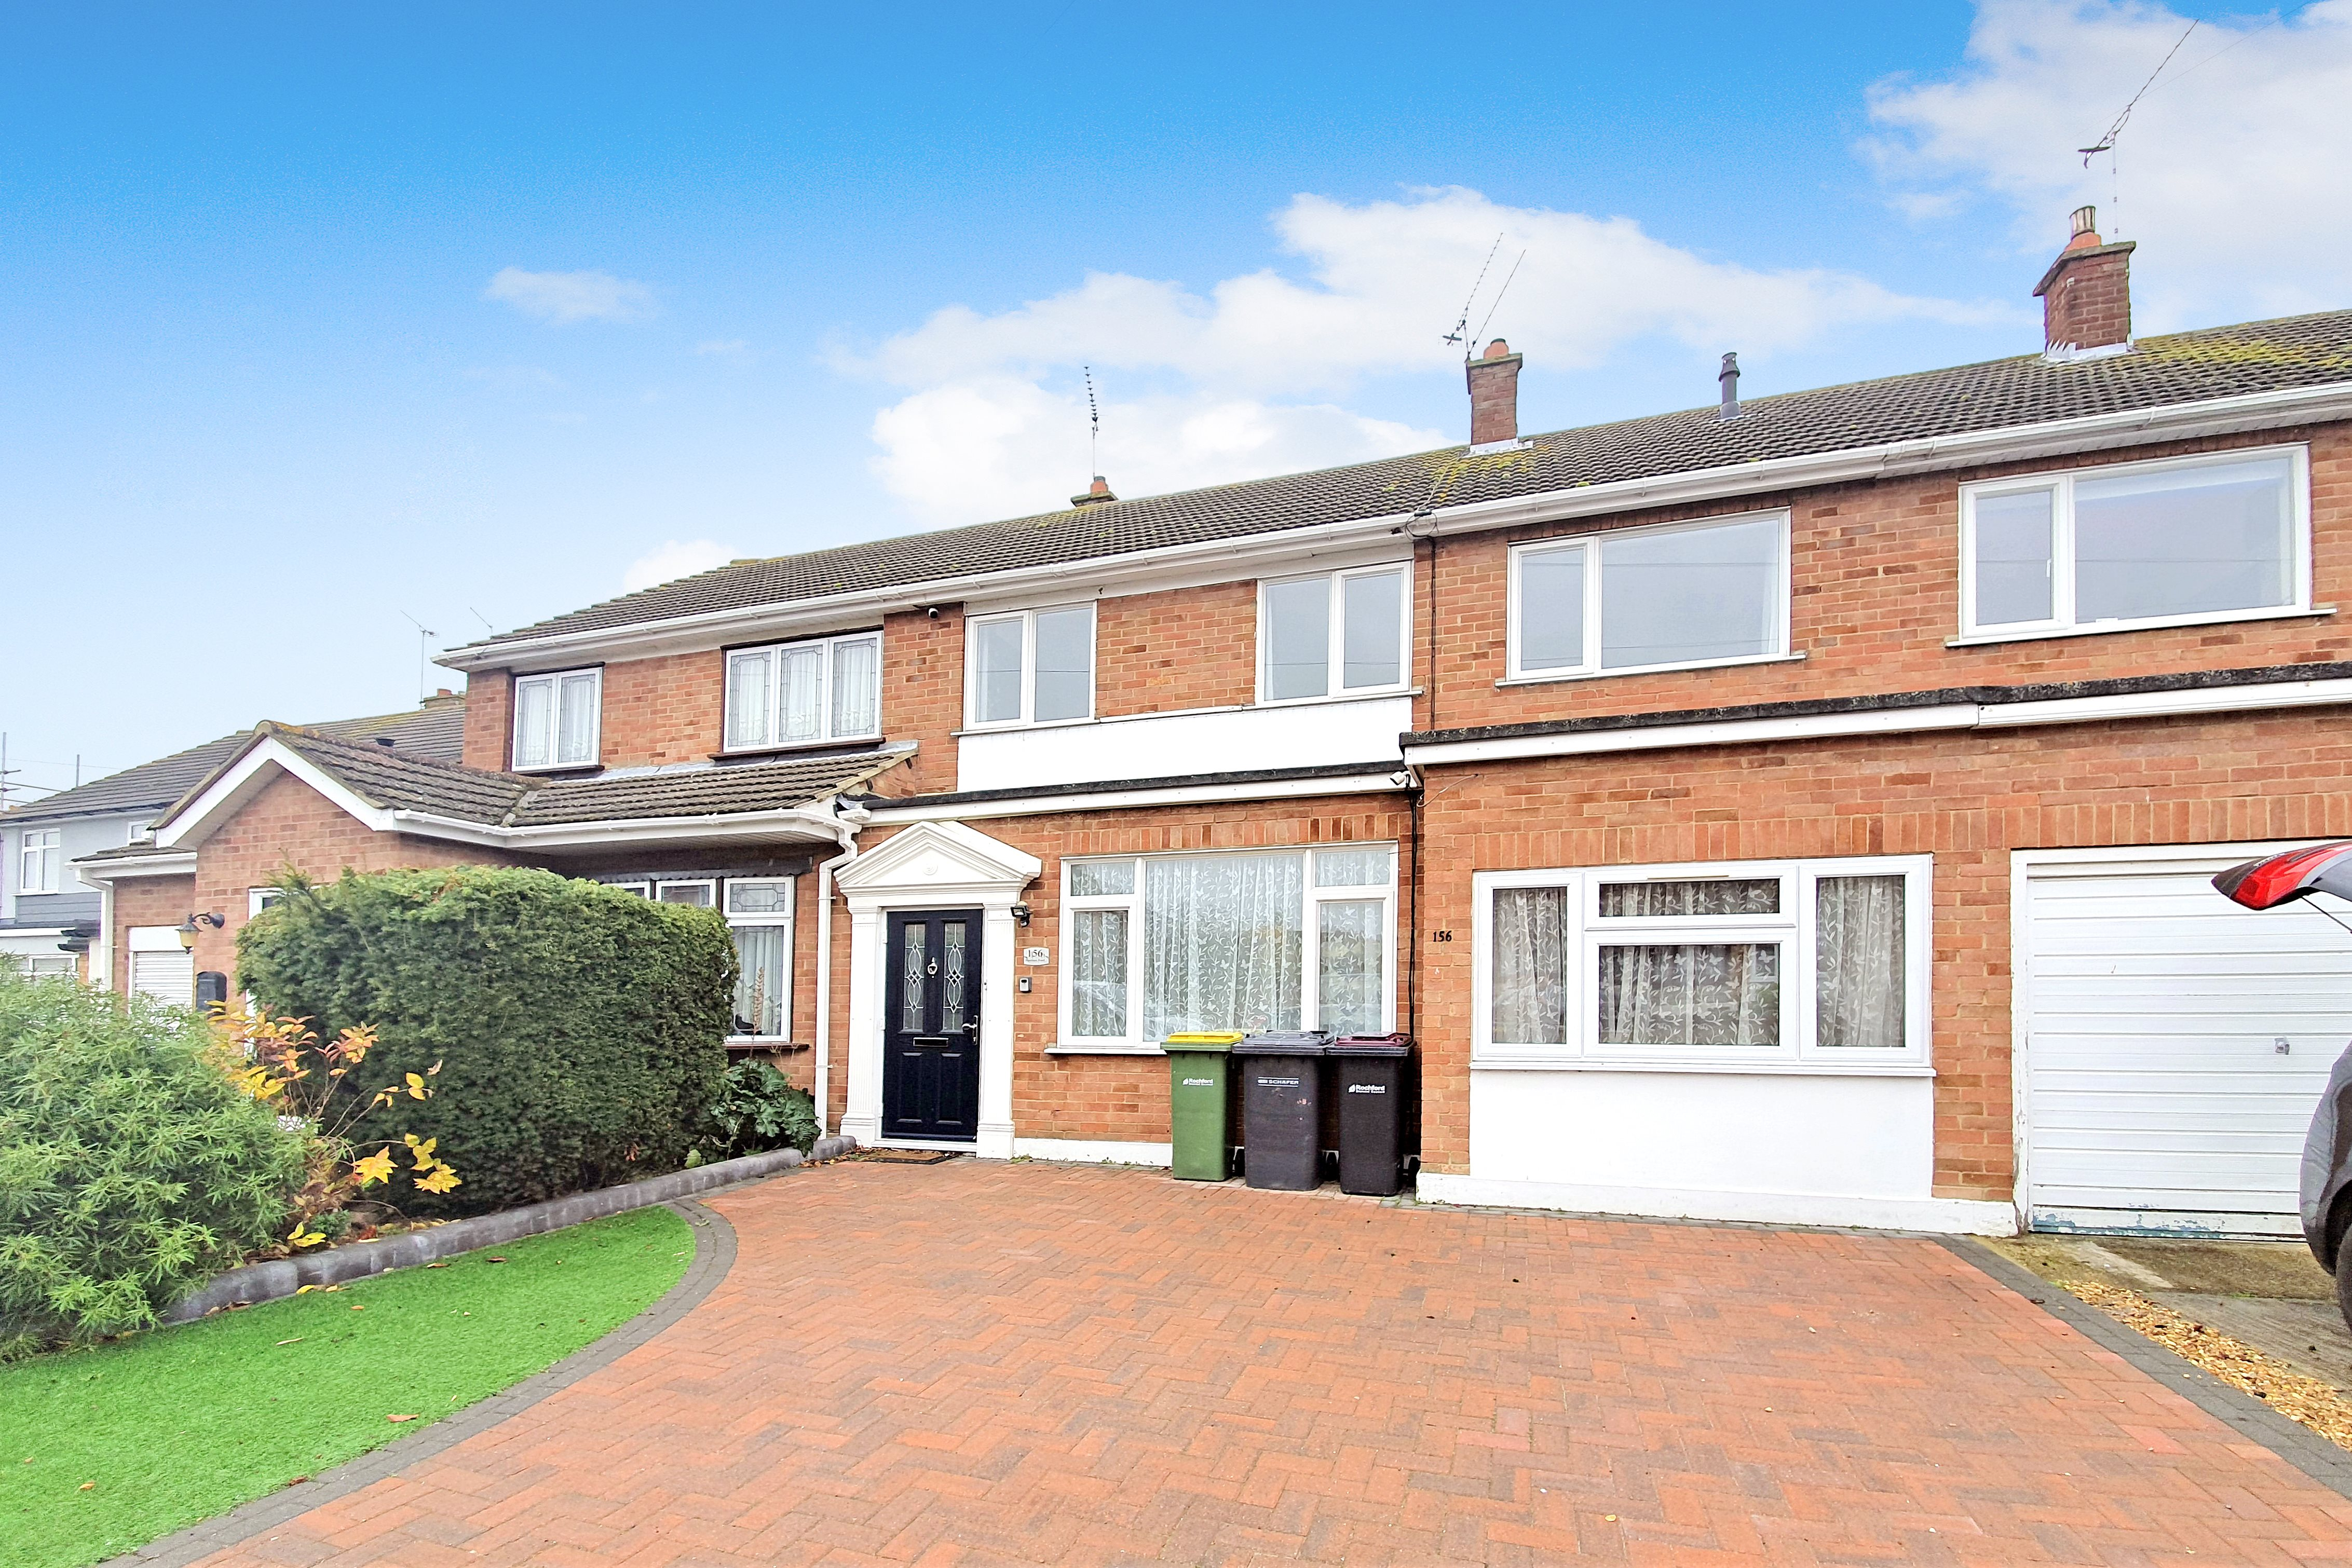 4 bed terraced house to rent in Burnham Road, Hullbridge, SS5